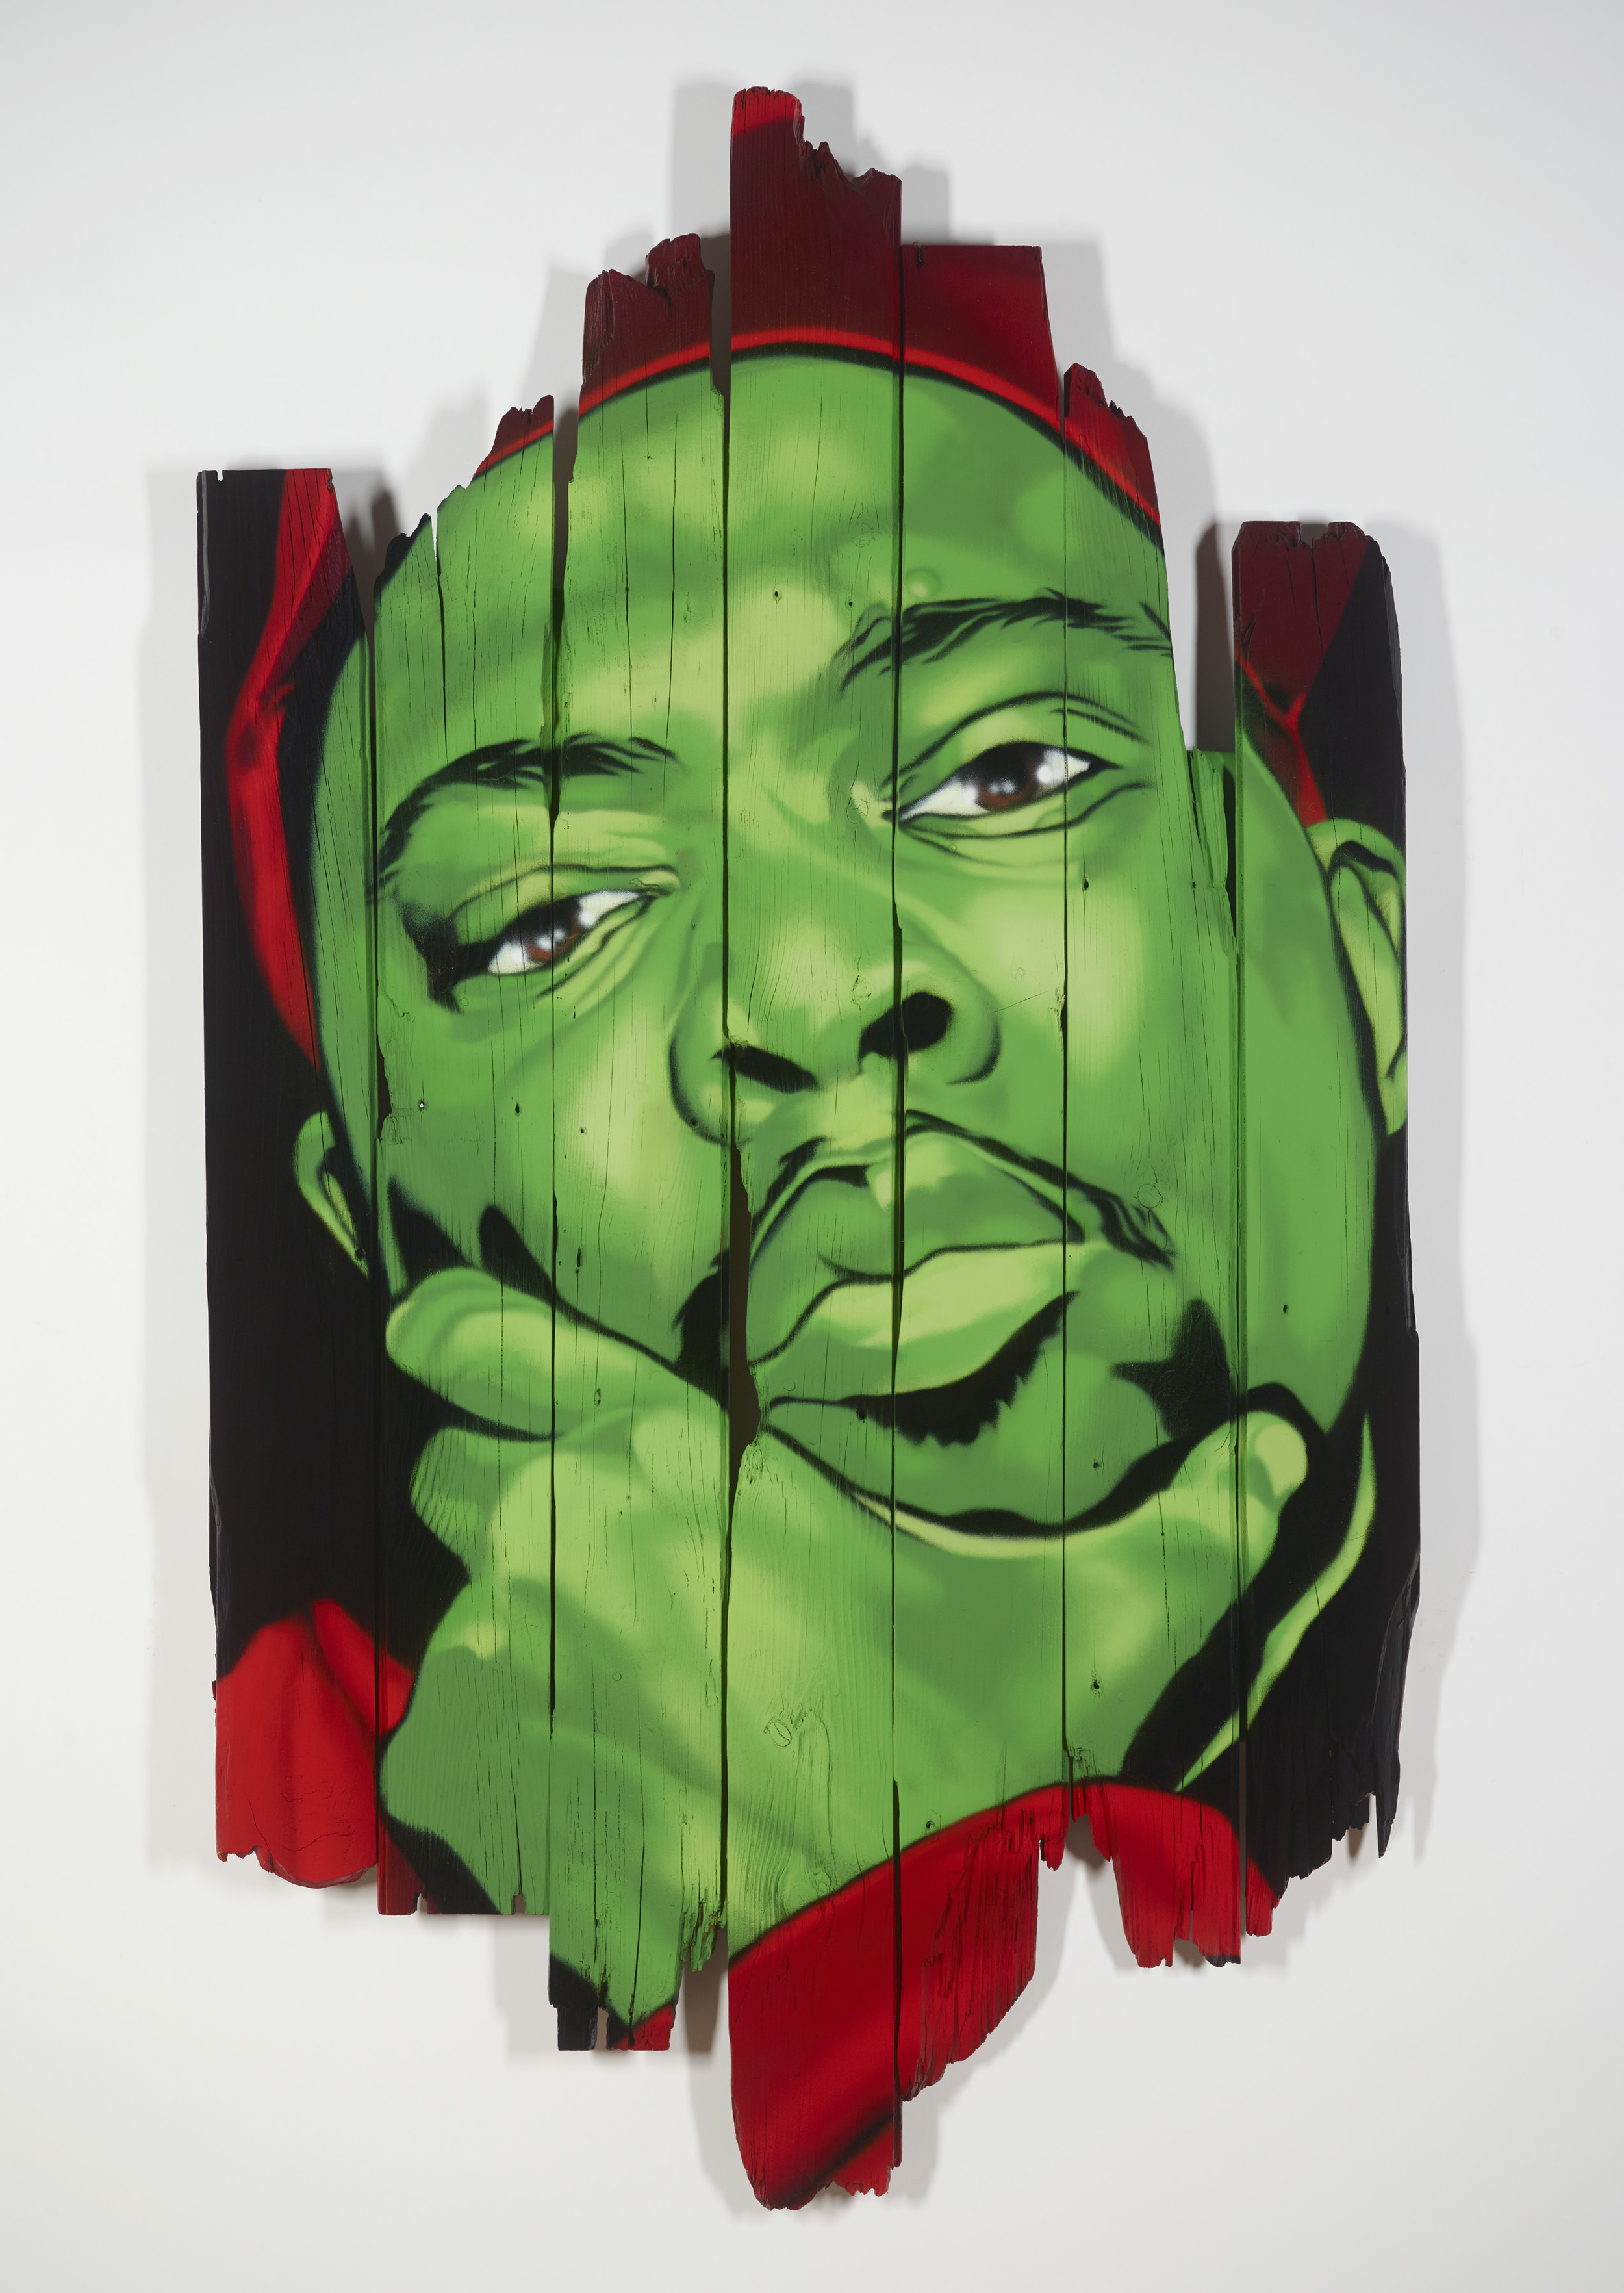 The Five Foot Assassin – spray on wood 64 x 36 - $1400